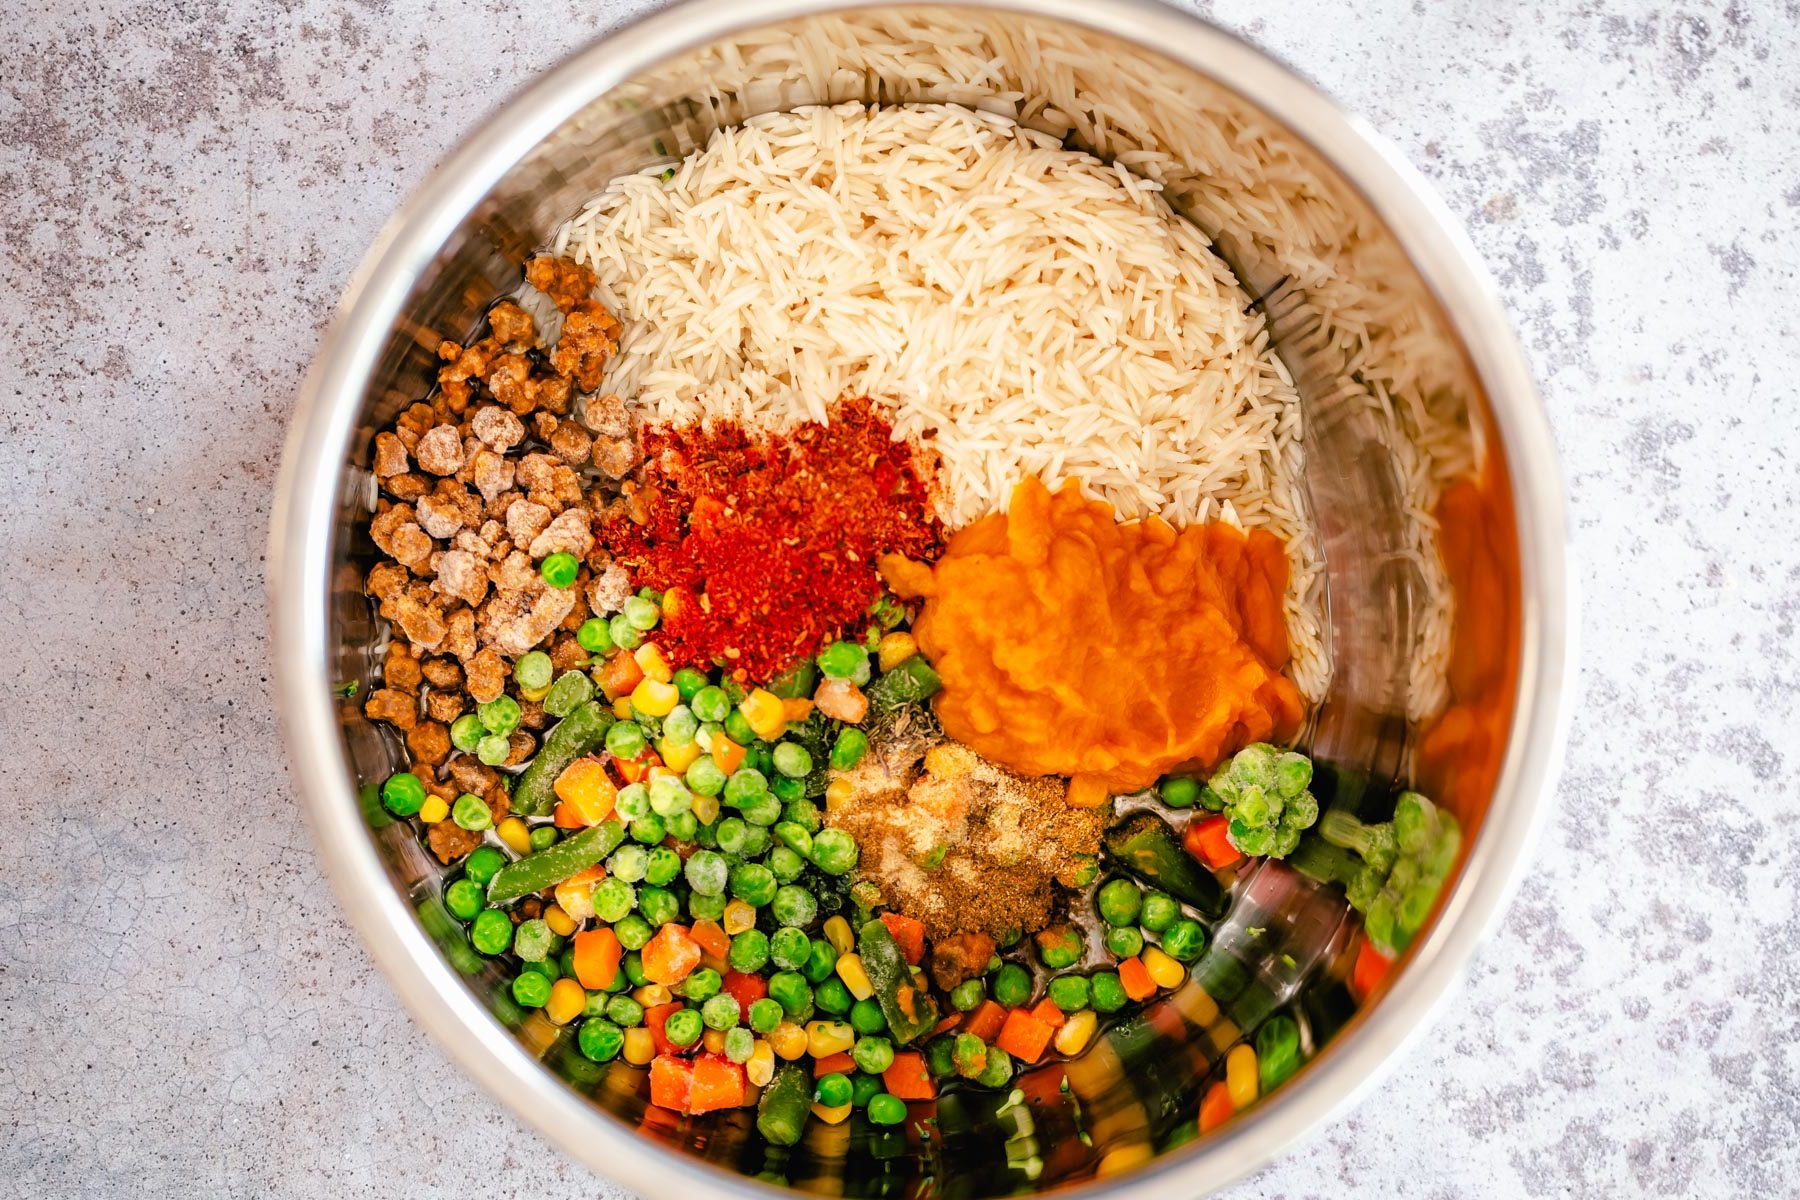 ingredients for making Pumpkin fried rice in an Instant Pot